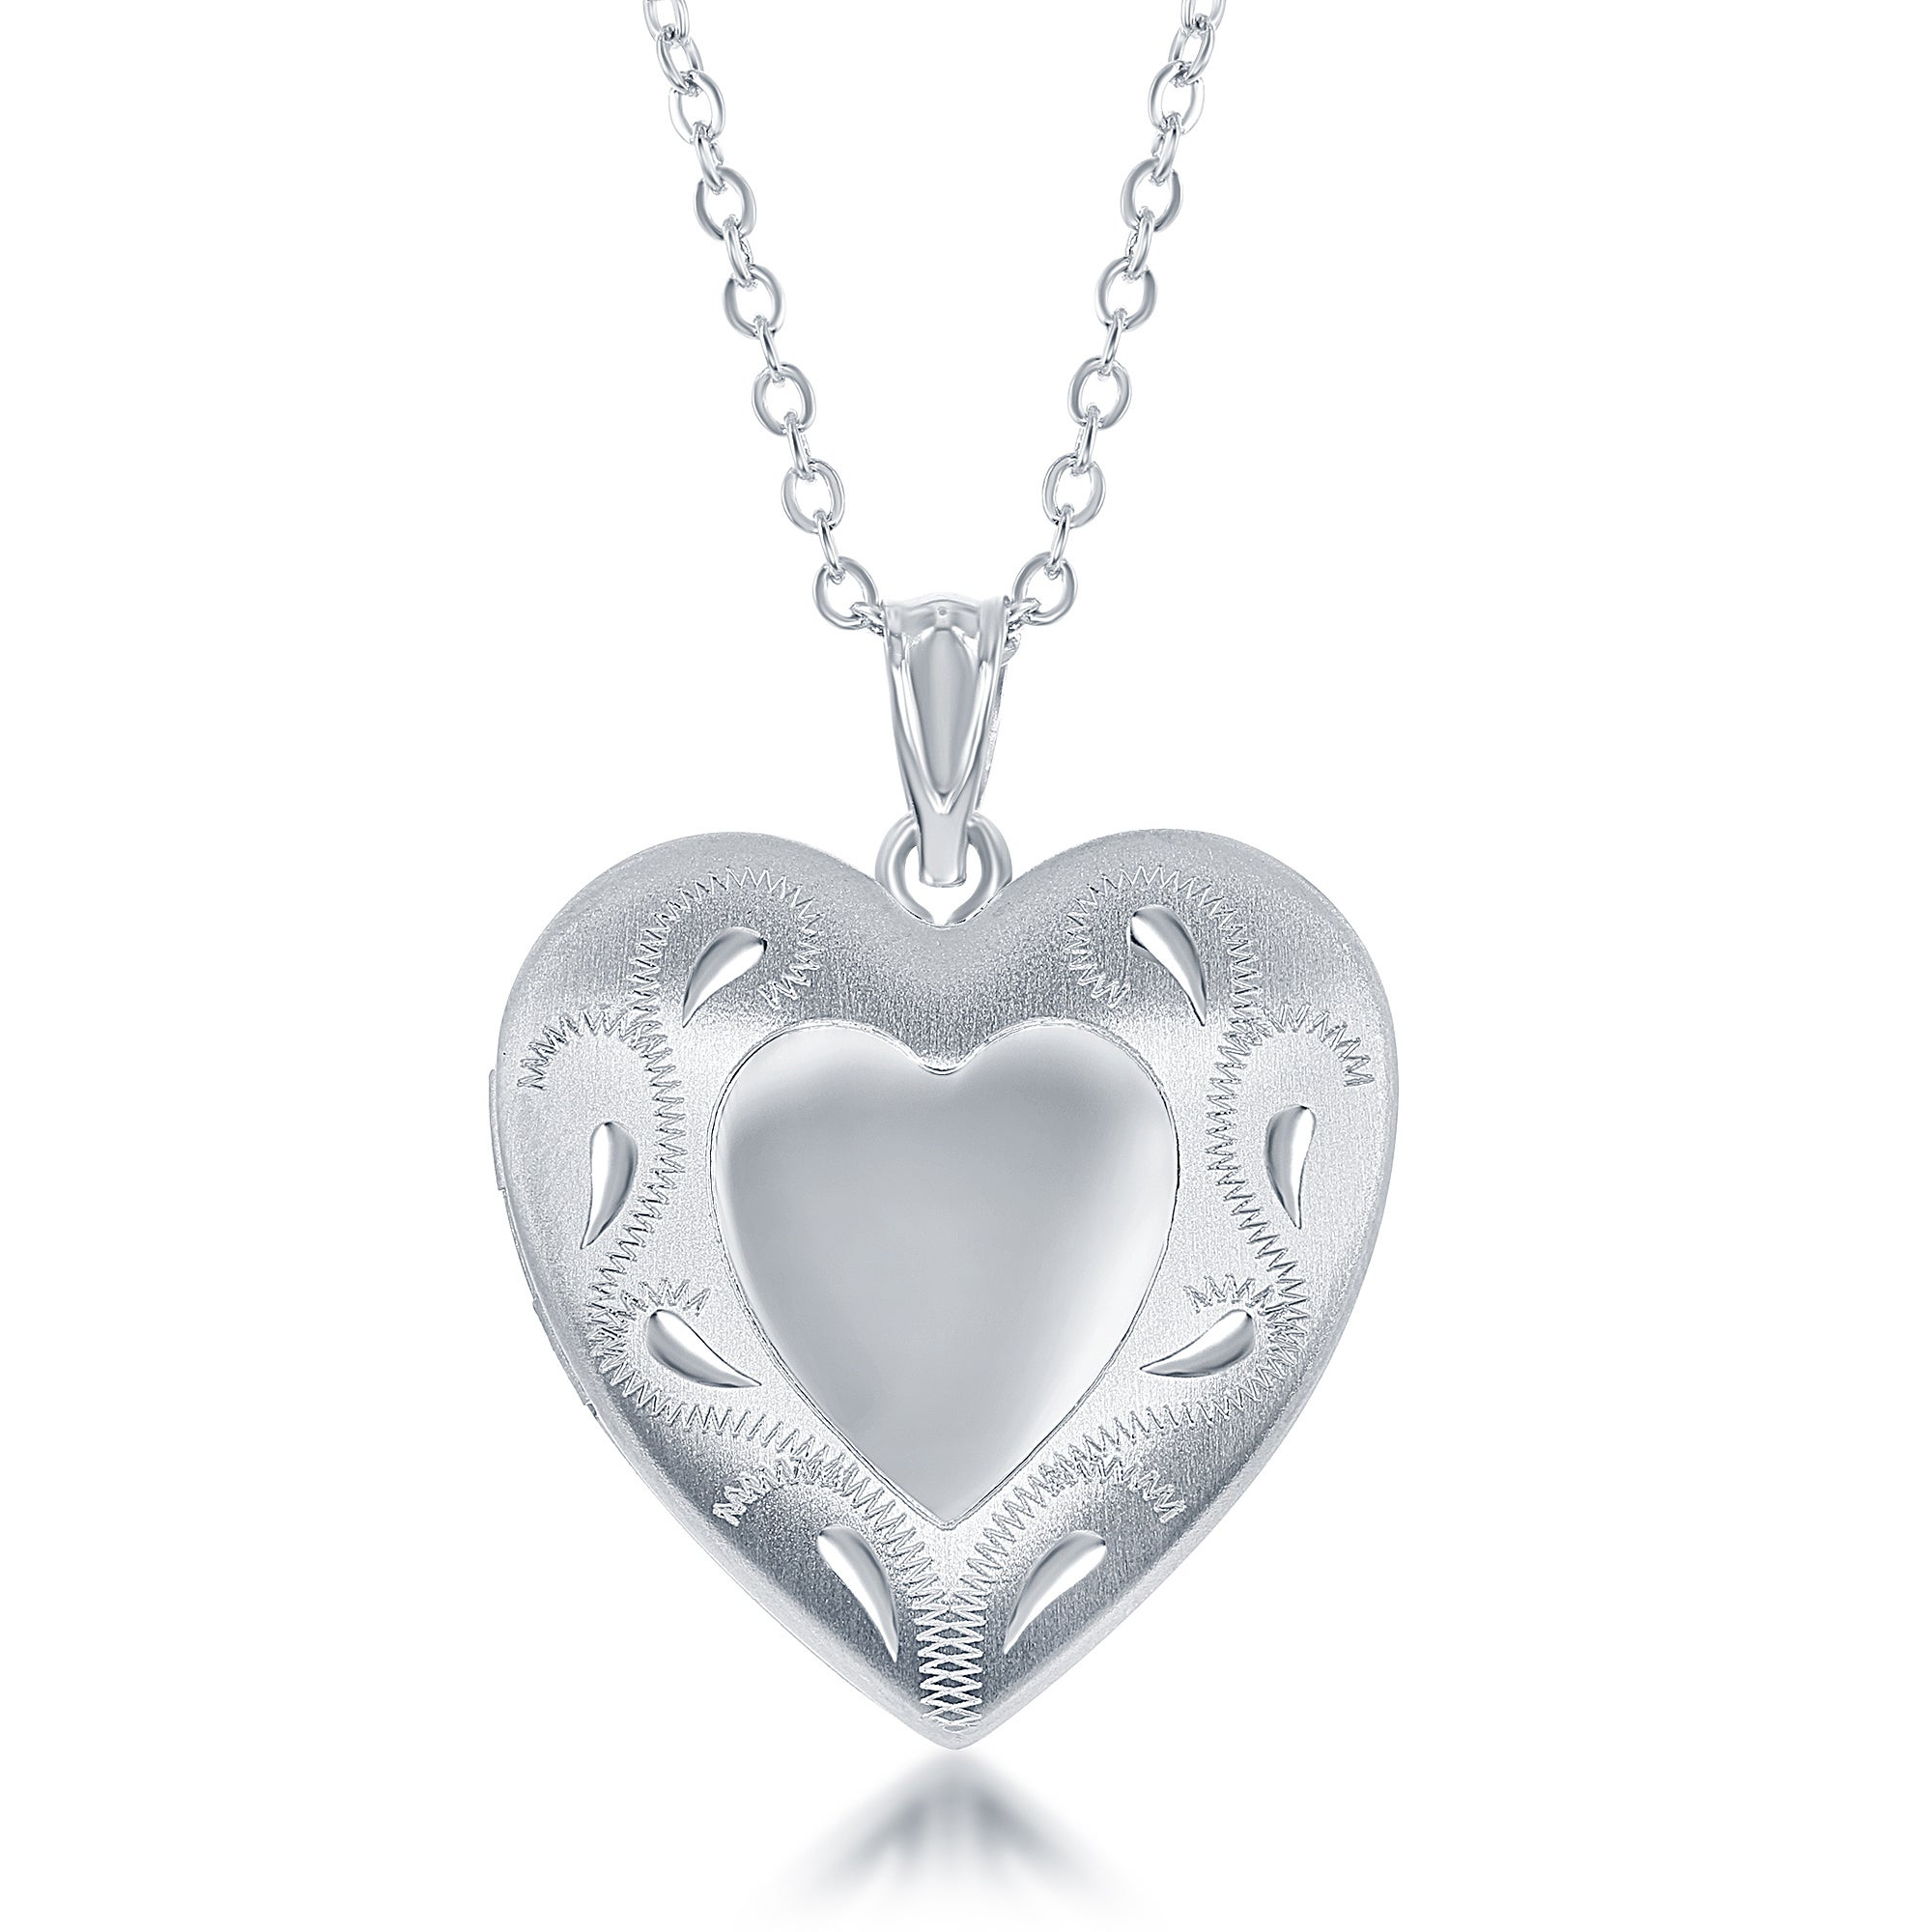 the locket addition taweez heart pin etsy my silver charm latest shop half excited india share kavach lockets to